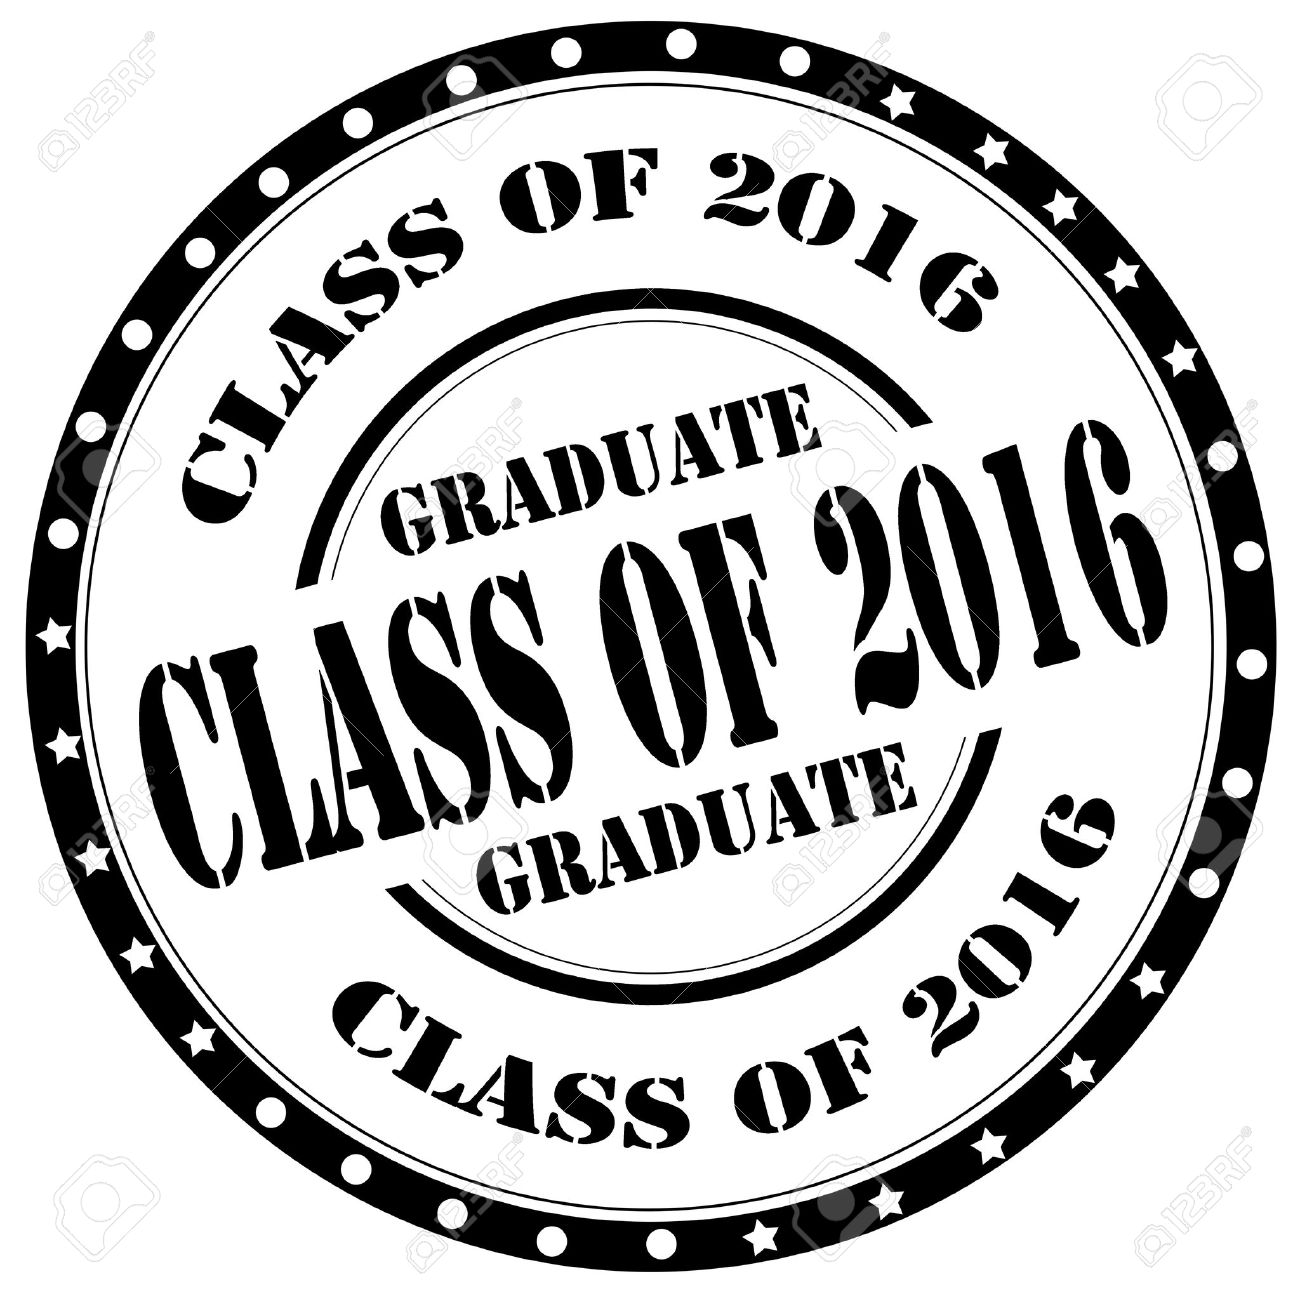 Grunge rubber stamp with text Class Of 2016,vector illustration - 39622428